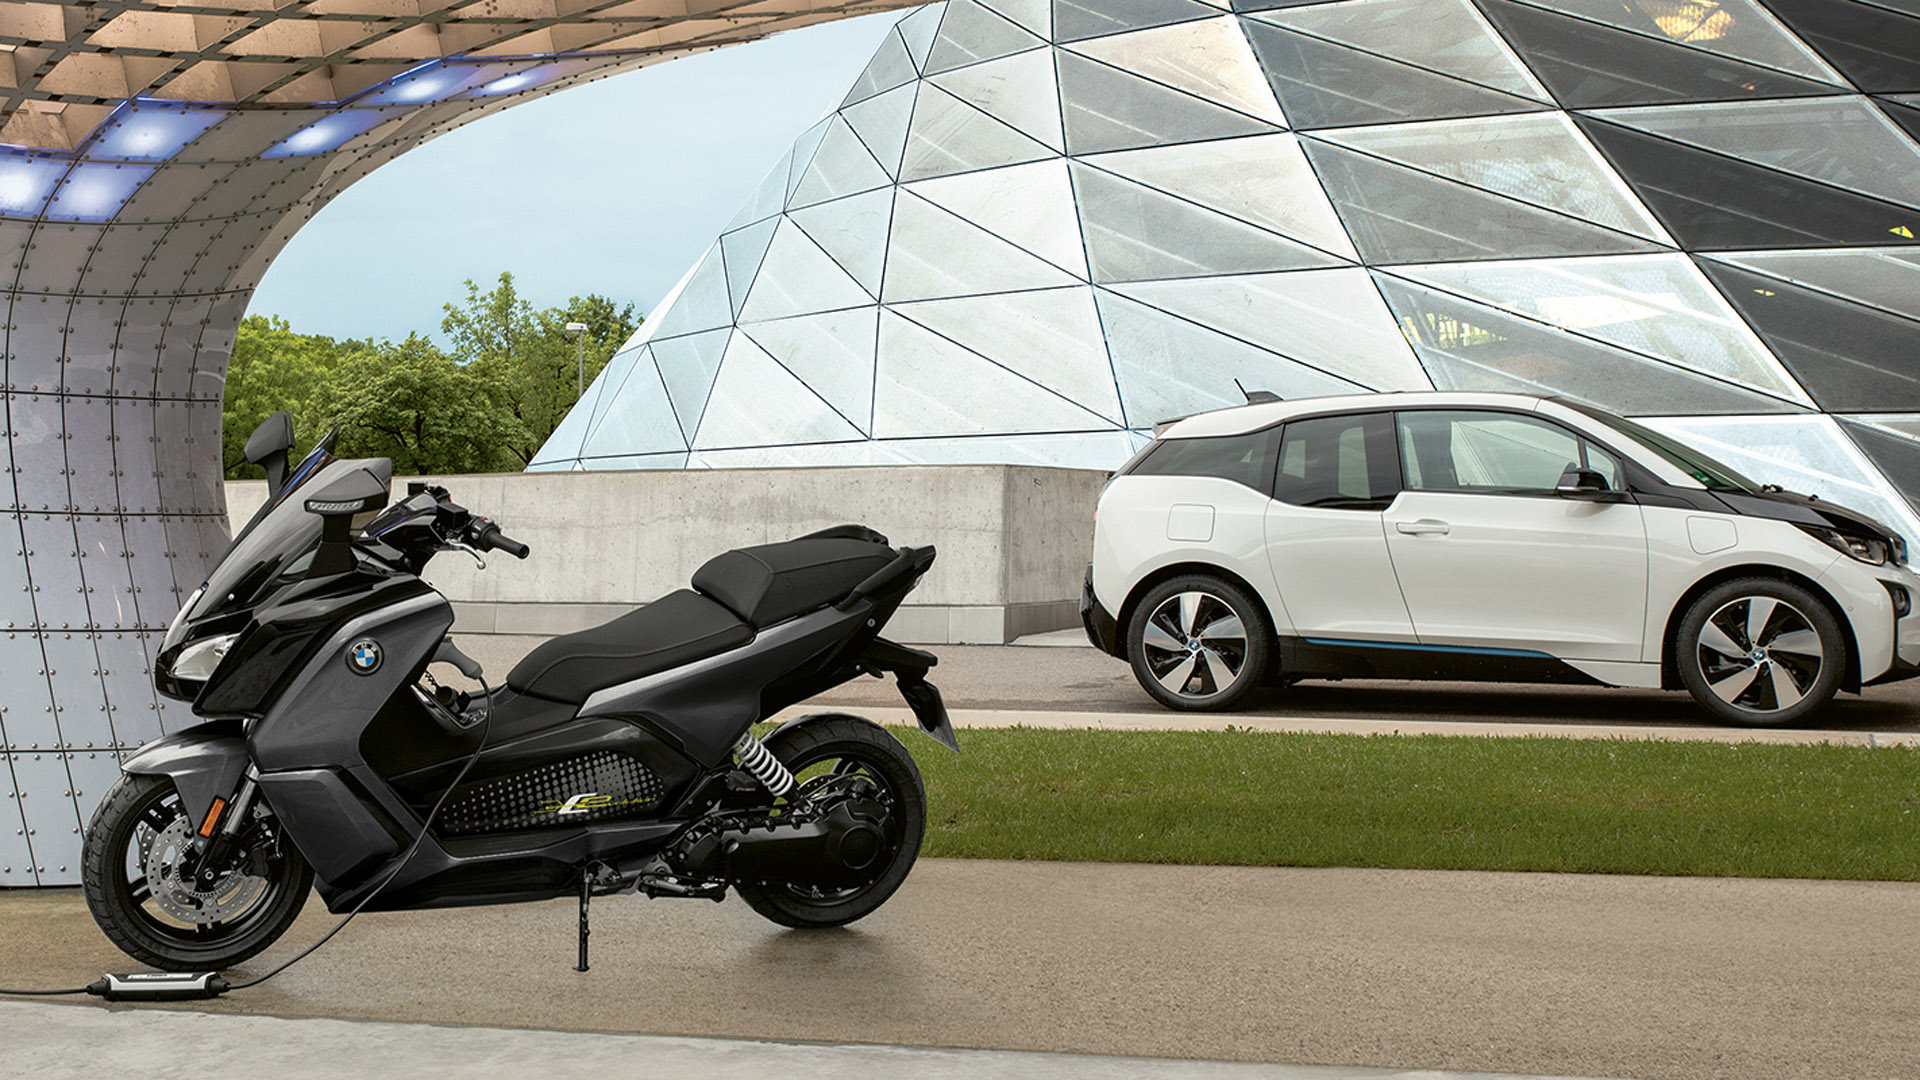 BMW bike and car